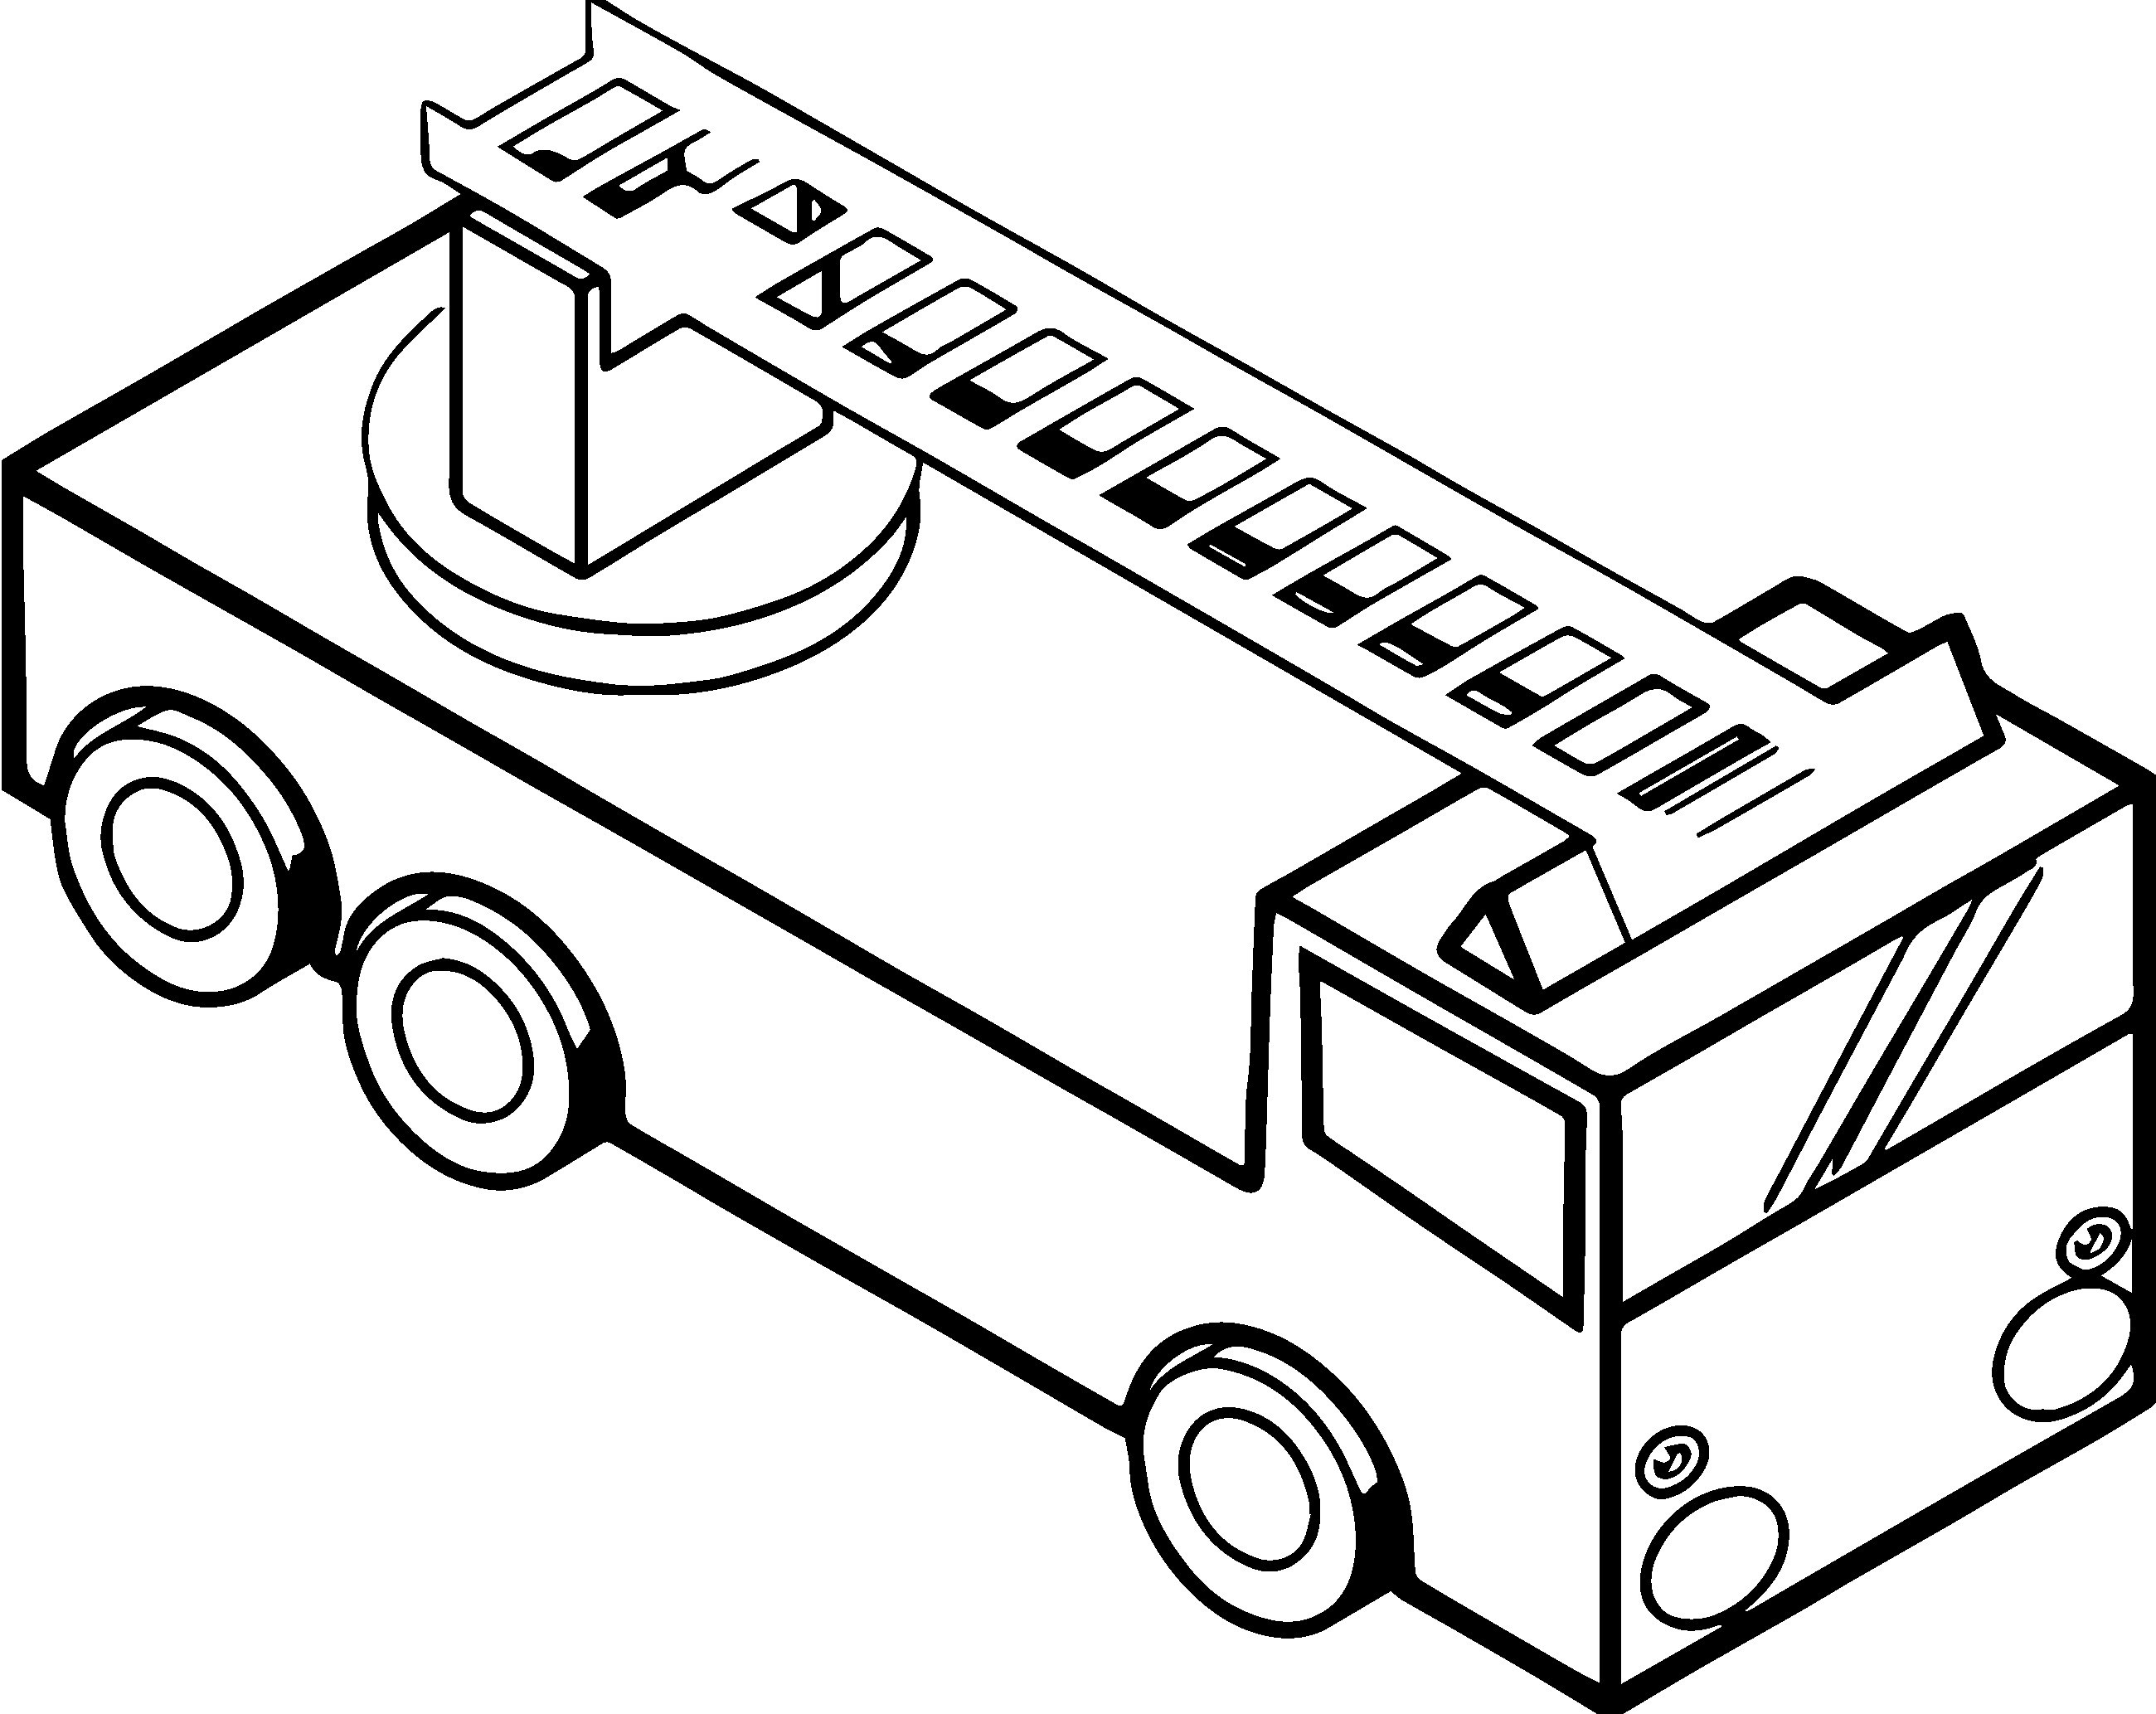 how to draw fire engine easy fire truck drawing free download on clipartmag how draw fire to engine